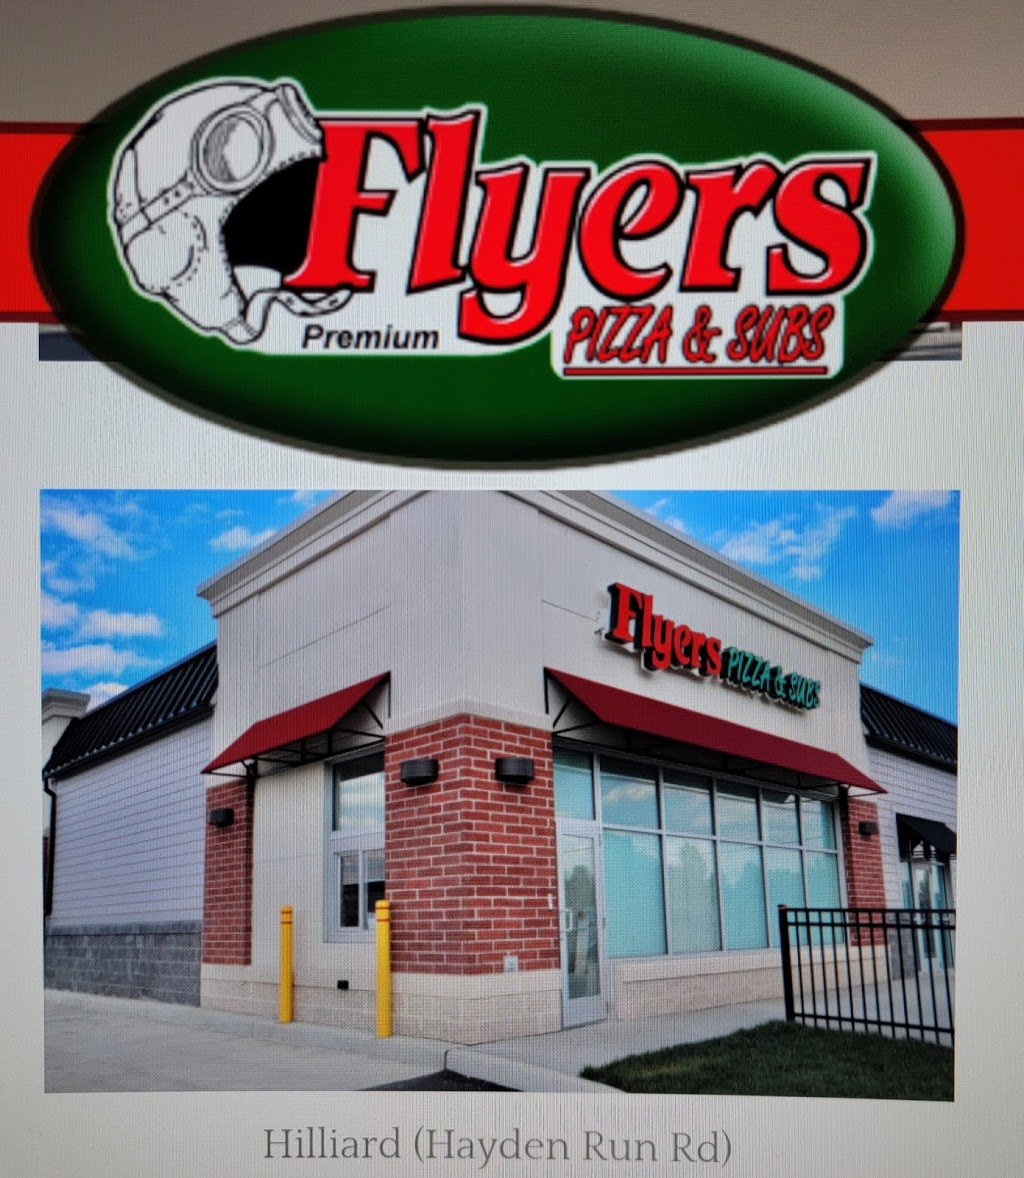 Flyers Pizza Hayden Run | meal delivery | 6542 Hayden Run Rd, Hilliard, OH 43026, USA | 6149690789 OR +1 614-969-0789